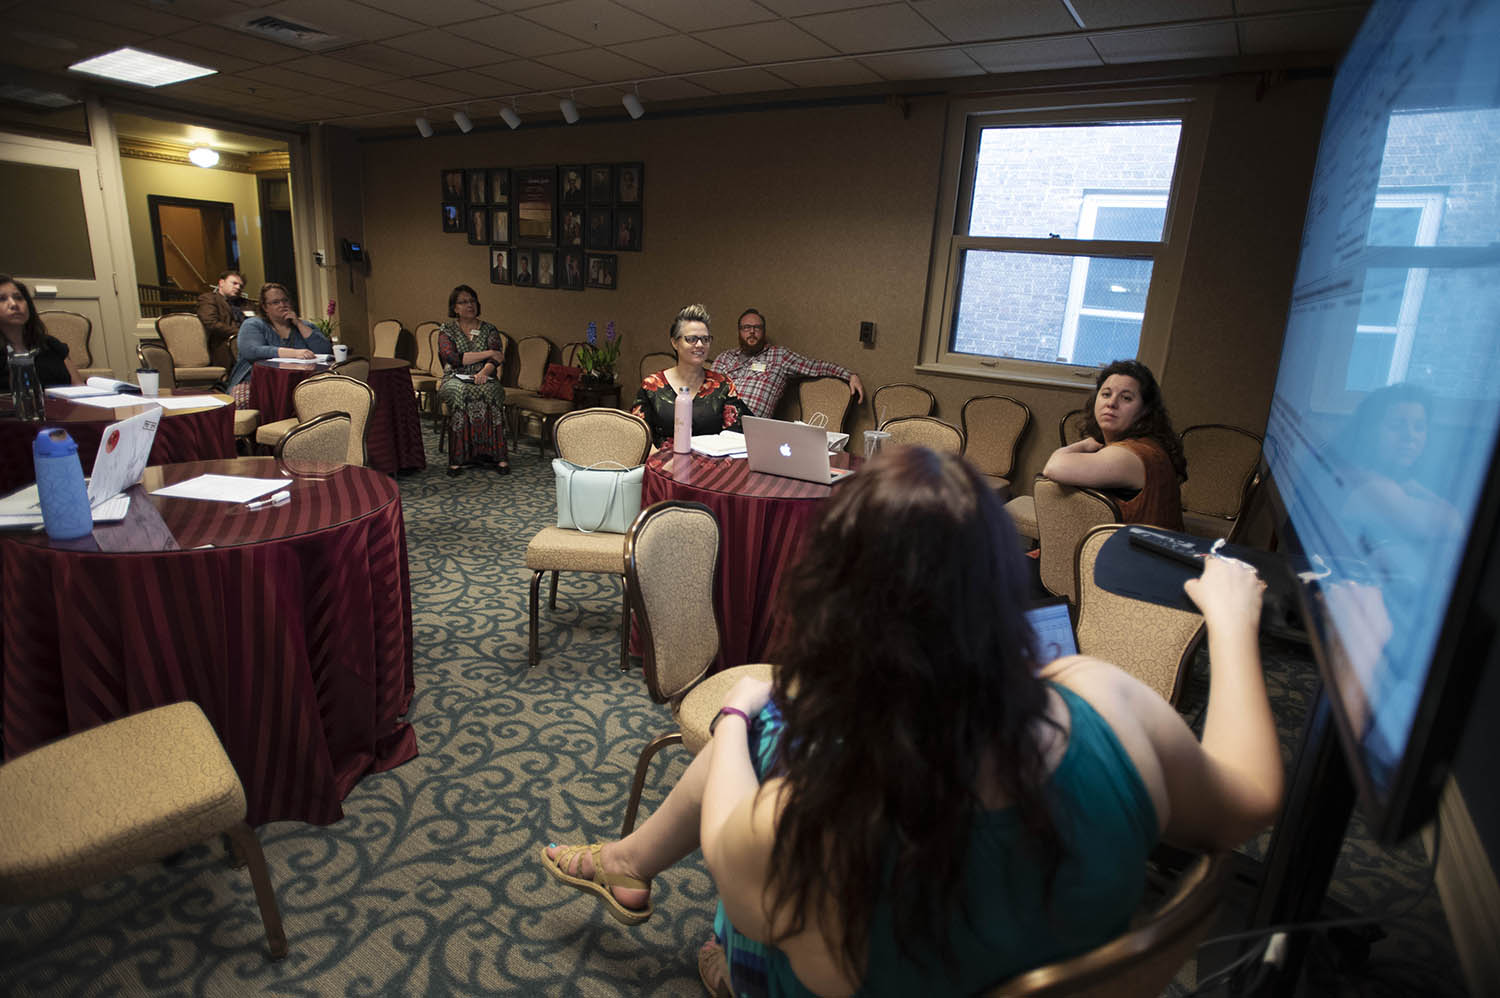 Conference goers meet in the Delack Guild Room during TM3, Theatre Manager Third National Conference, at Proctors in Schenectady Thursday, May 3, 2018.